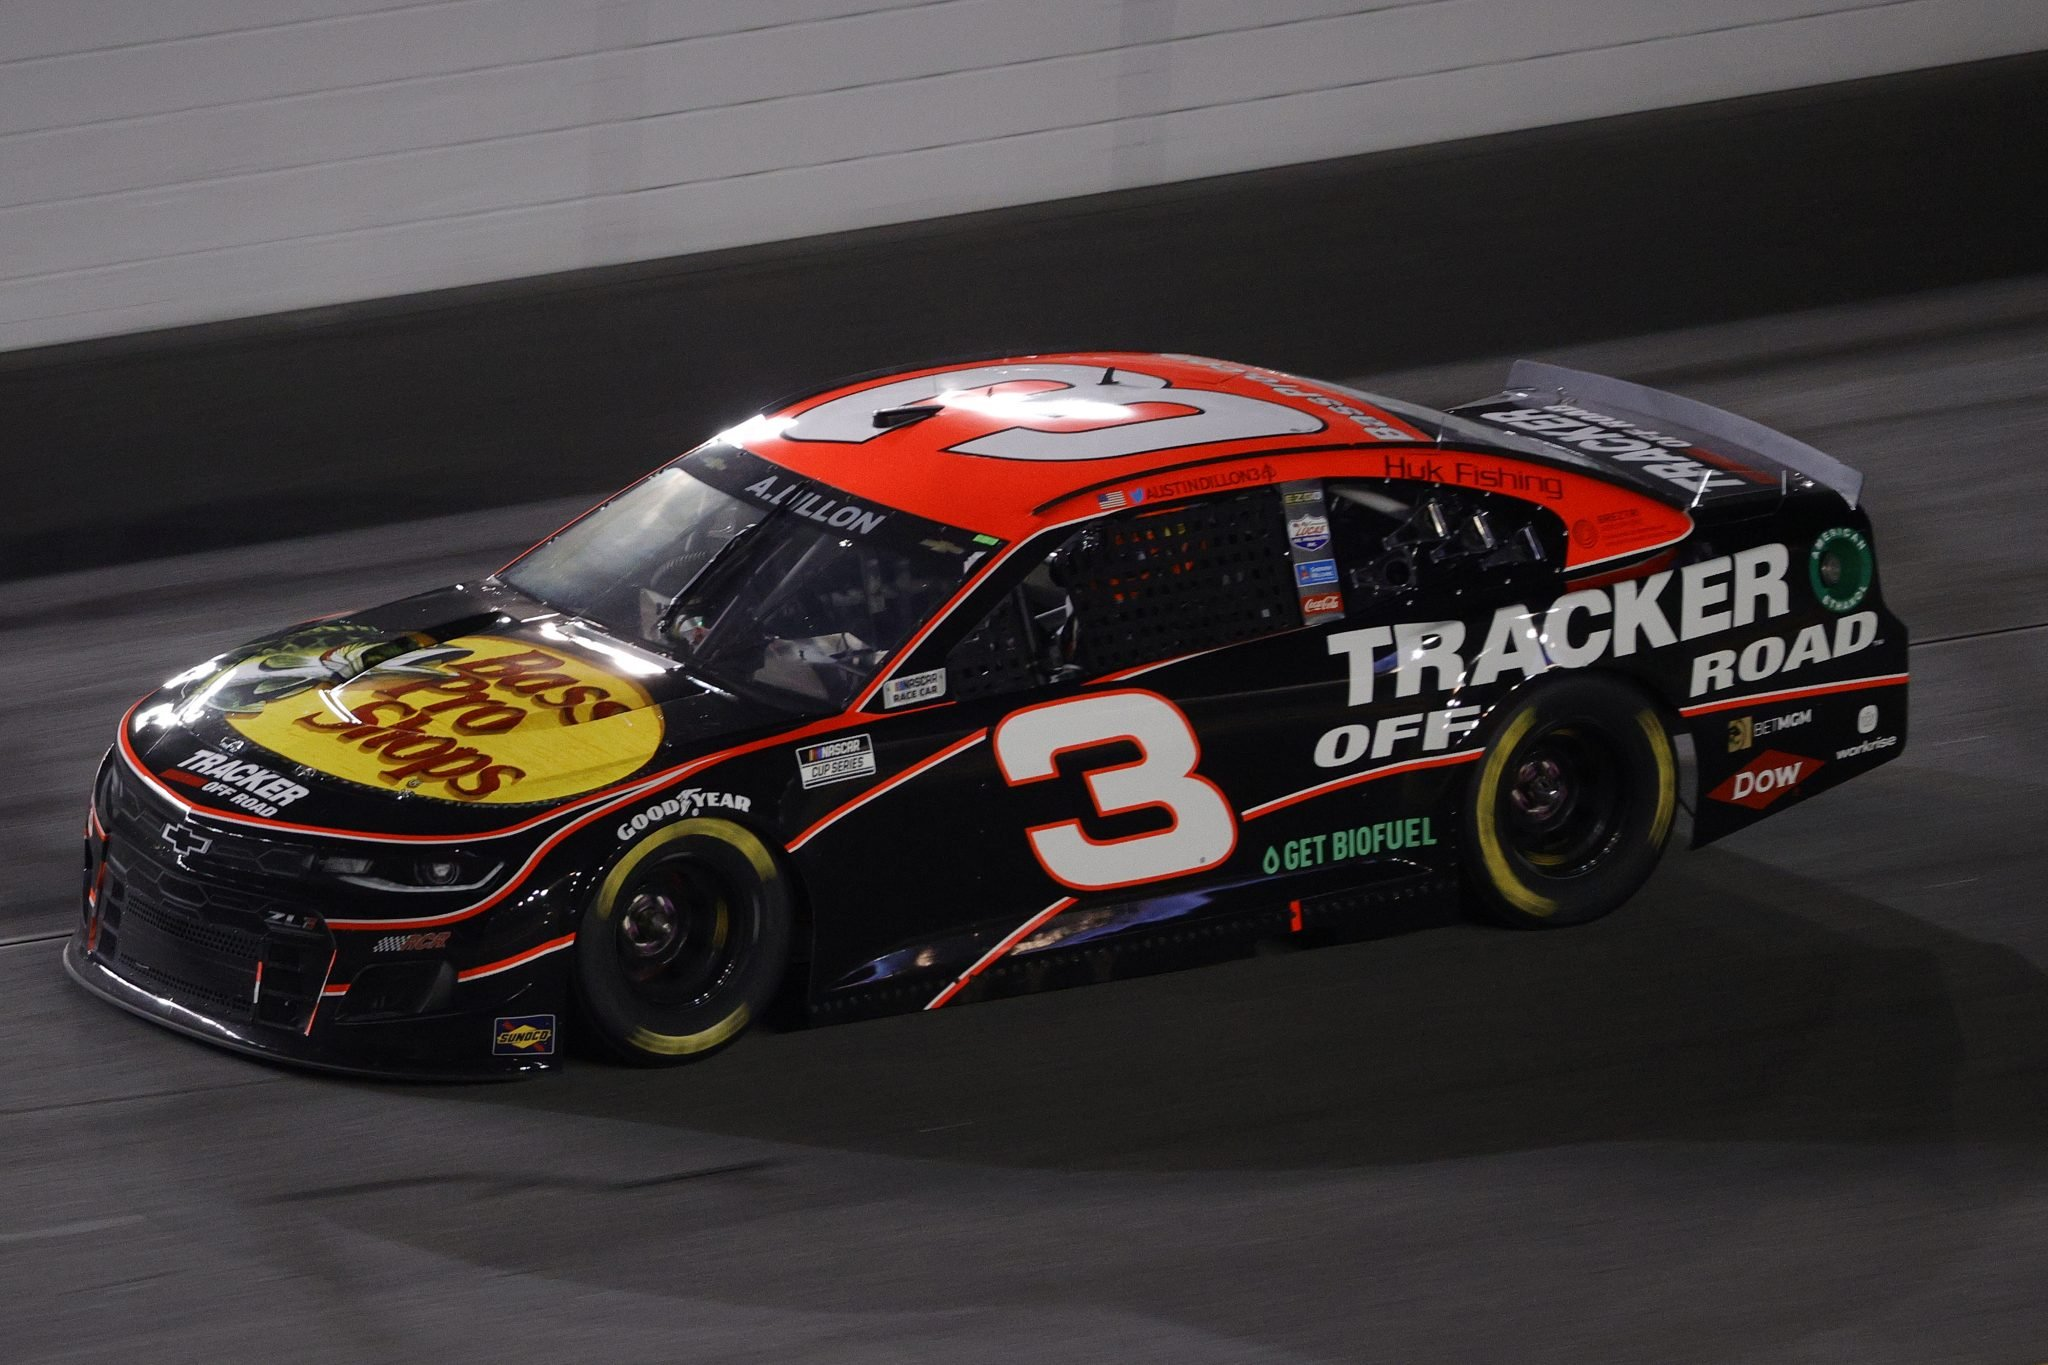 DAYTONA BEACH, FLORIDA - FEBRUARY 09: Austin Dillon, driver of the #3 Bass Pro Shops/Tracker Off Road Chevrolet, drives during the NASCAR Cup Series Busch Clash at Daytona at Daytona International Speedway on February 09, 2021 in Daytona Beach, Florida. (Photo by Chris Graythen/Getty Images) | Getty Images